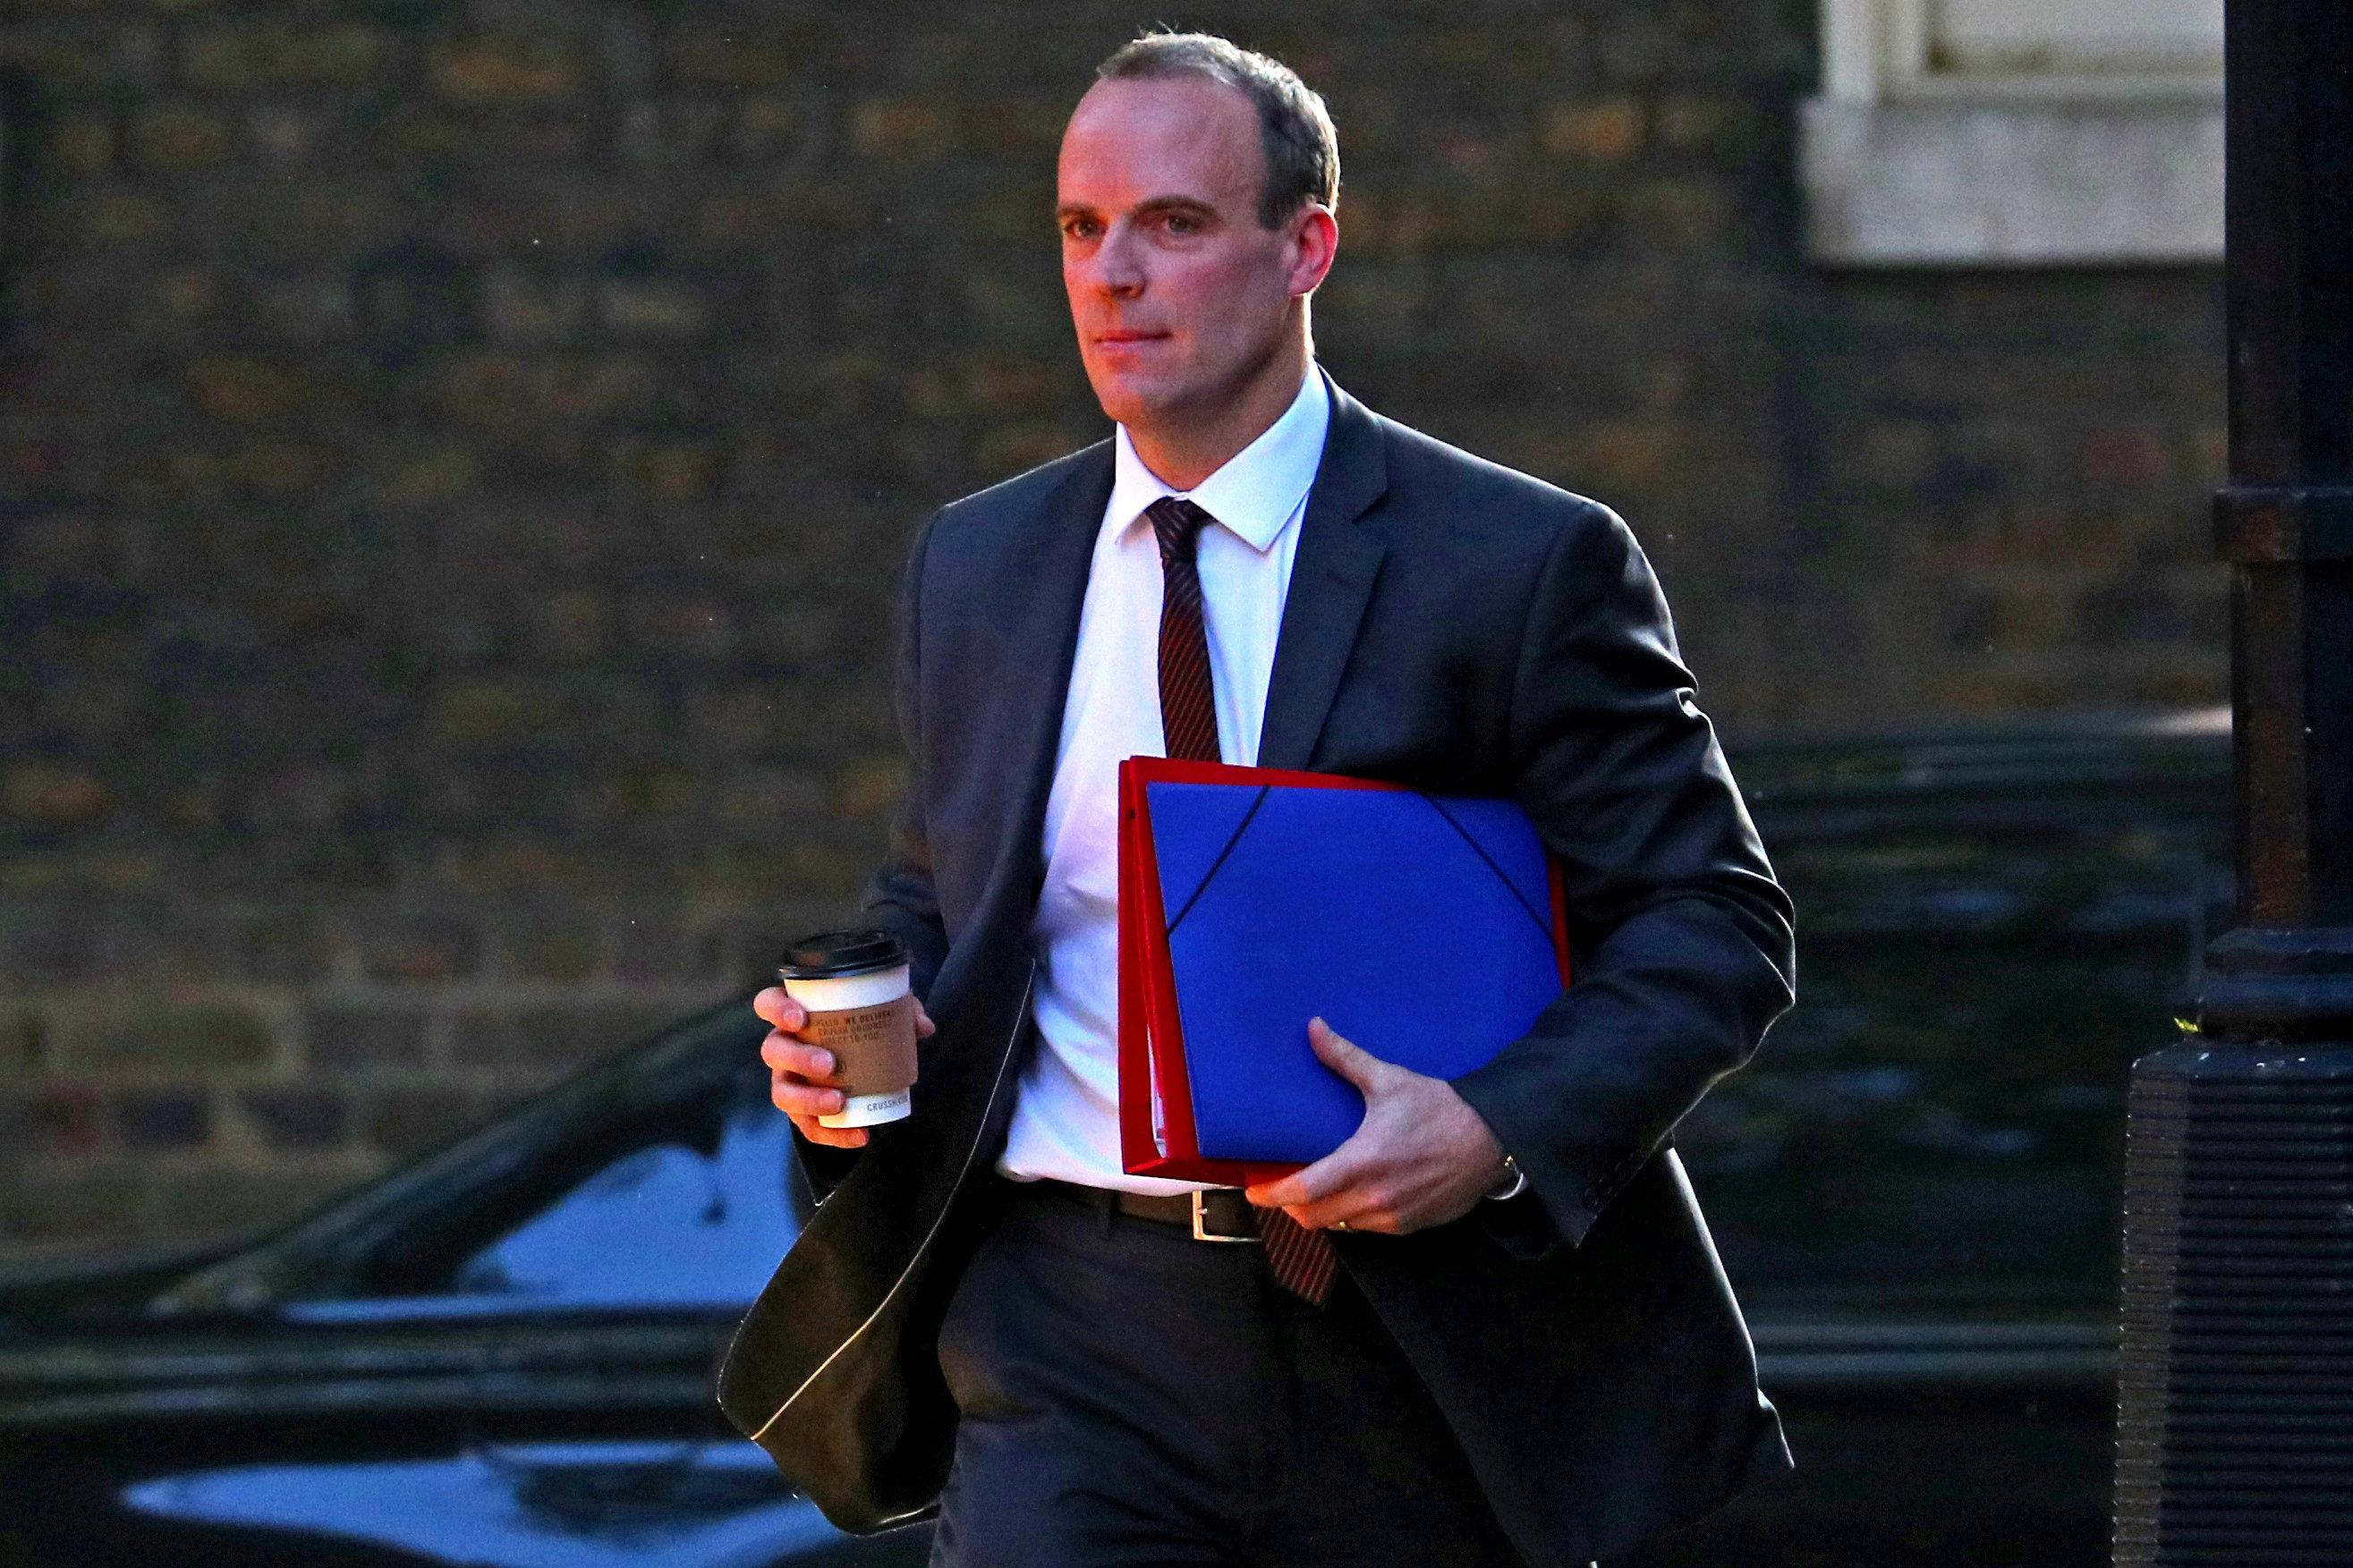 UK will pay 'substantially' less to EU in event of no Brexit deal - Raab